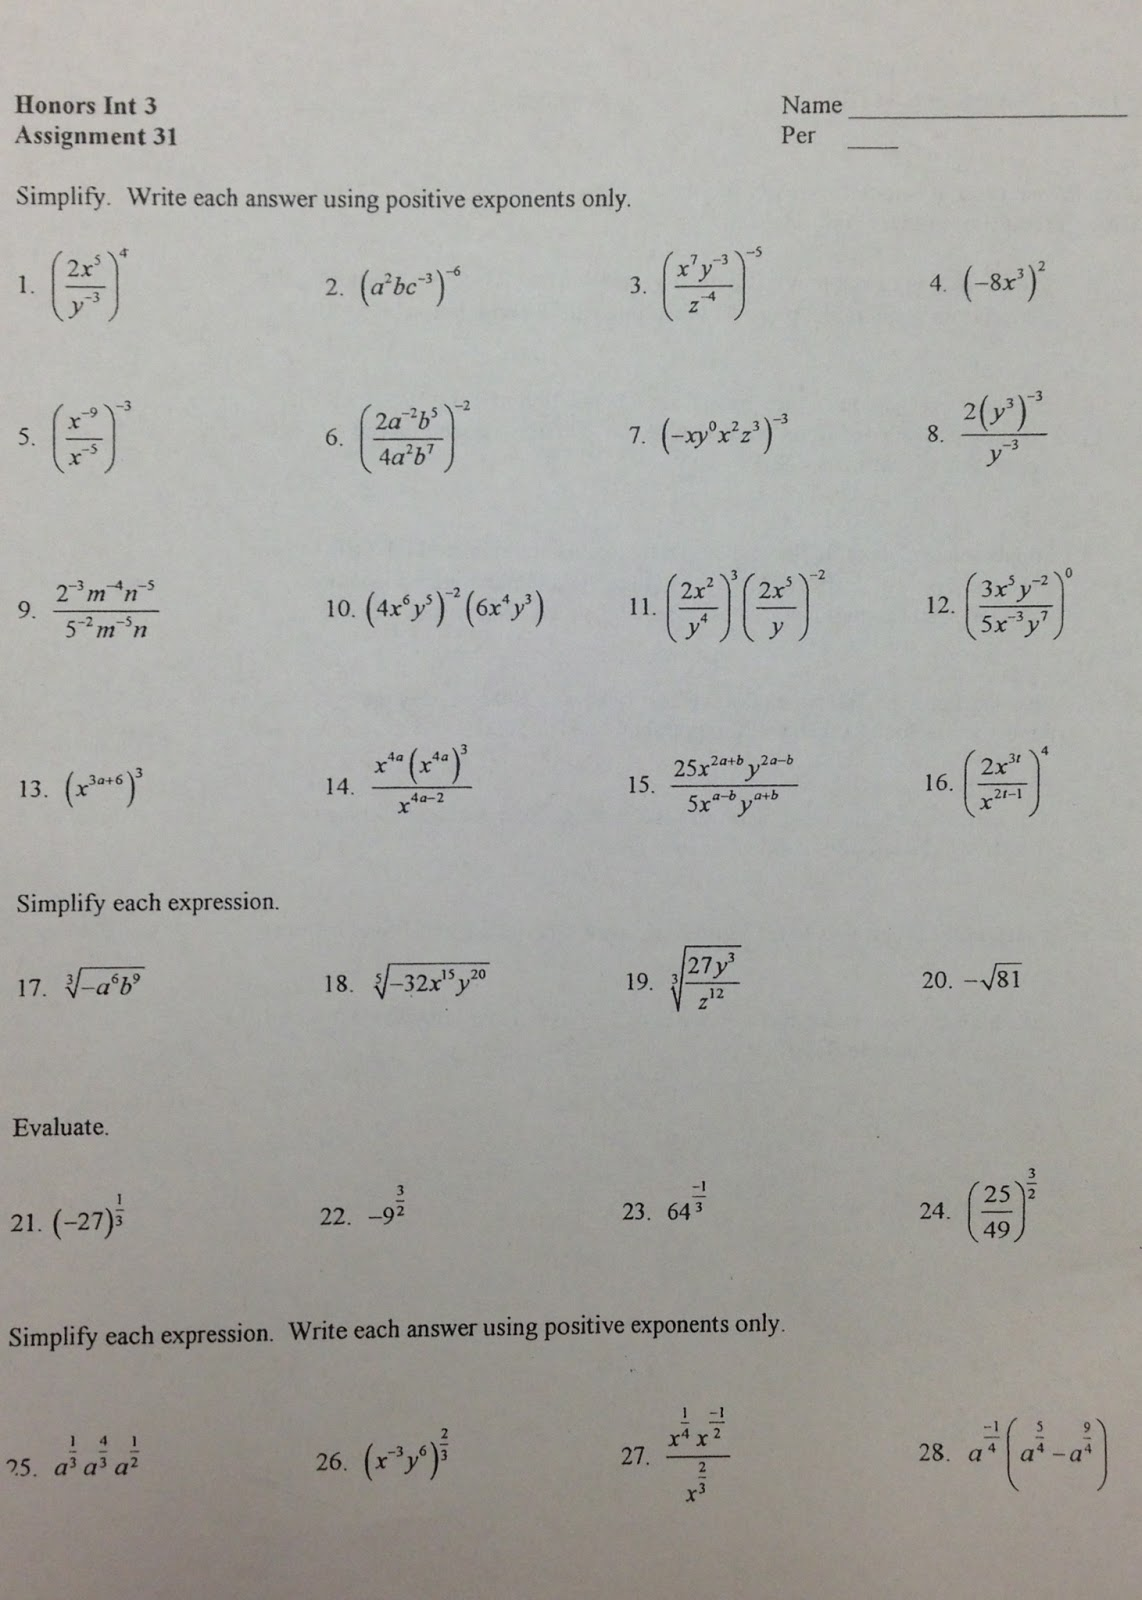 worksheet Exponents And Exponential Functions Worksheets ml1983mathematics exponents exponential functions and logarithms worksheets keys